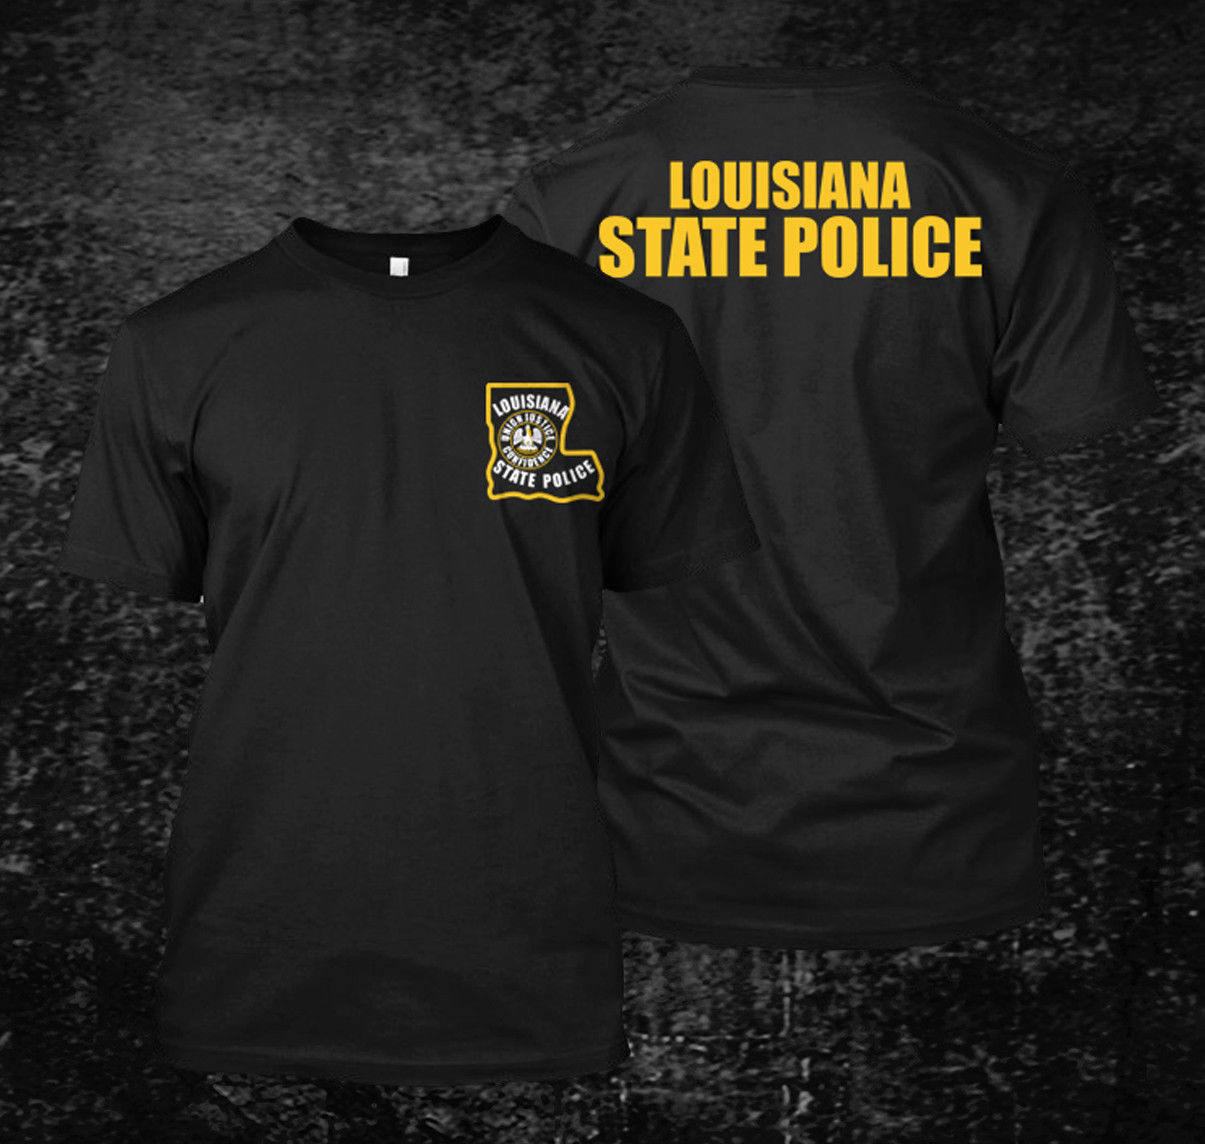 2019 Funny Louisiana State Police - Custom Men'S Black T-Shirt Tee Double Side Unisex Tee